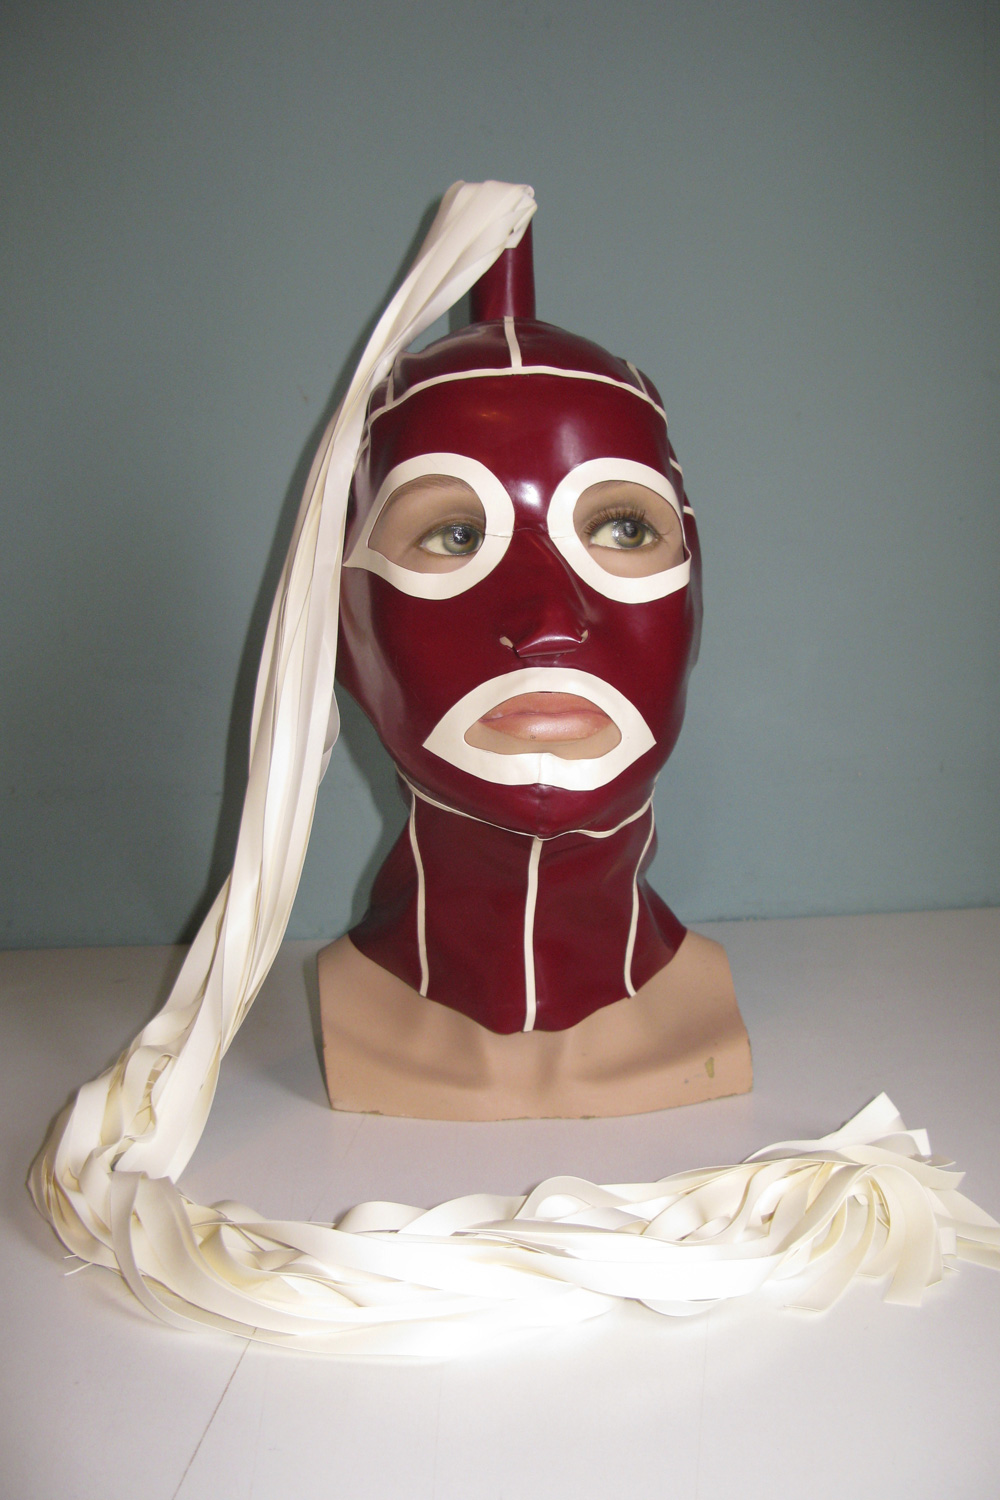 Ponytail Hood with Eye and Lip Feature